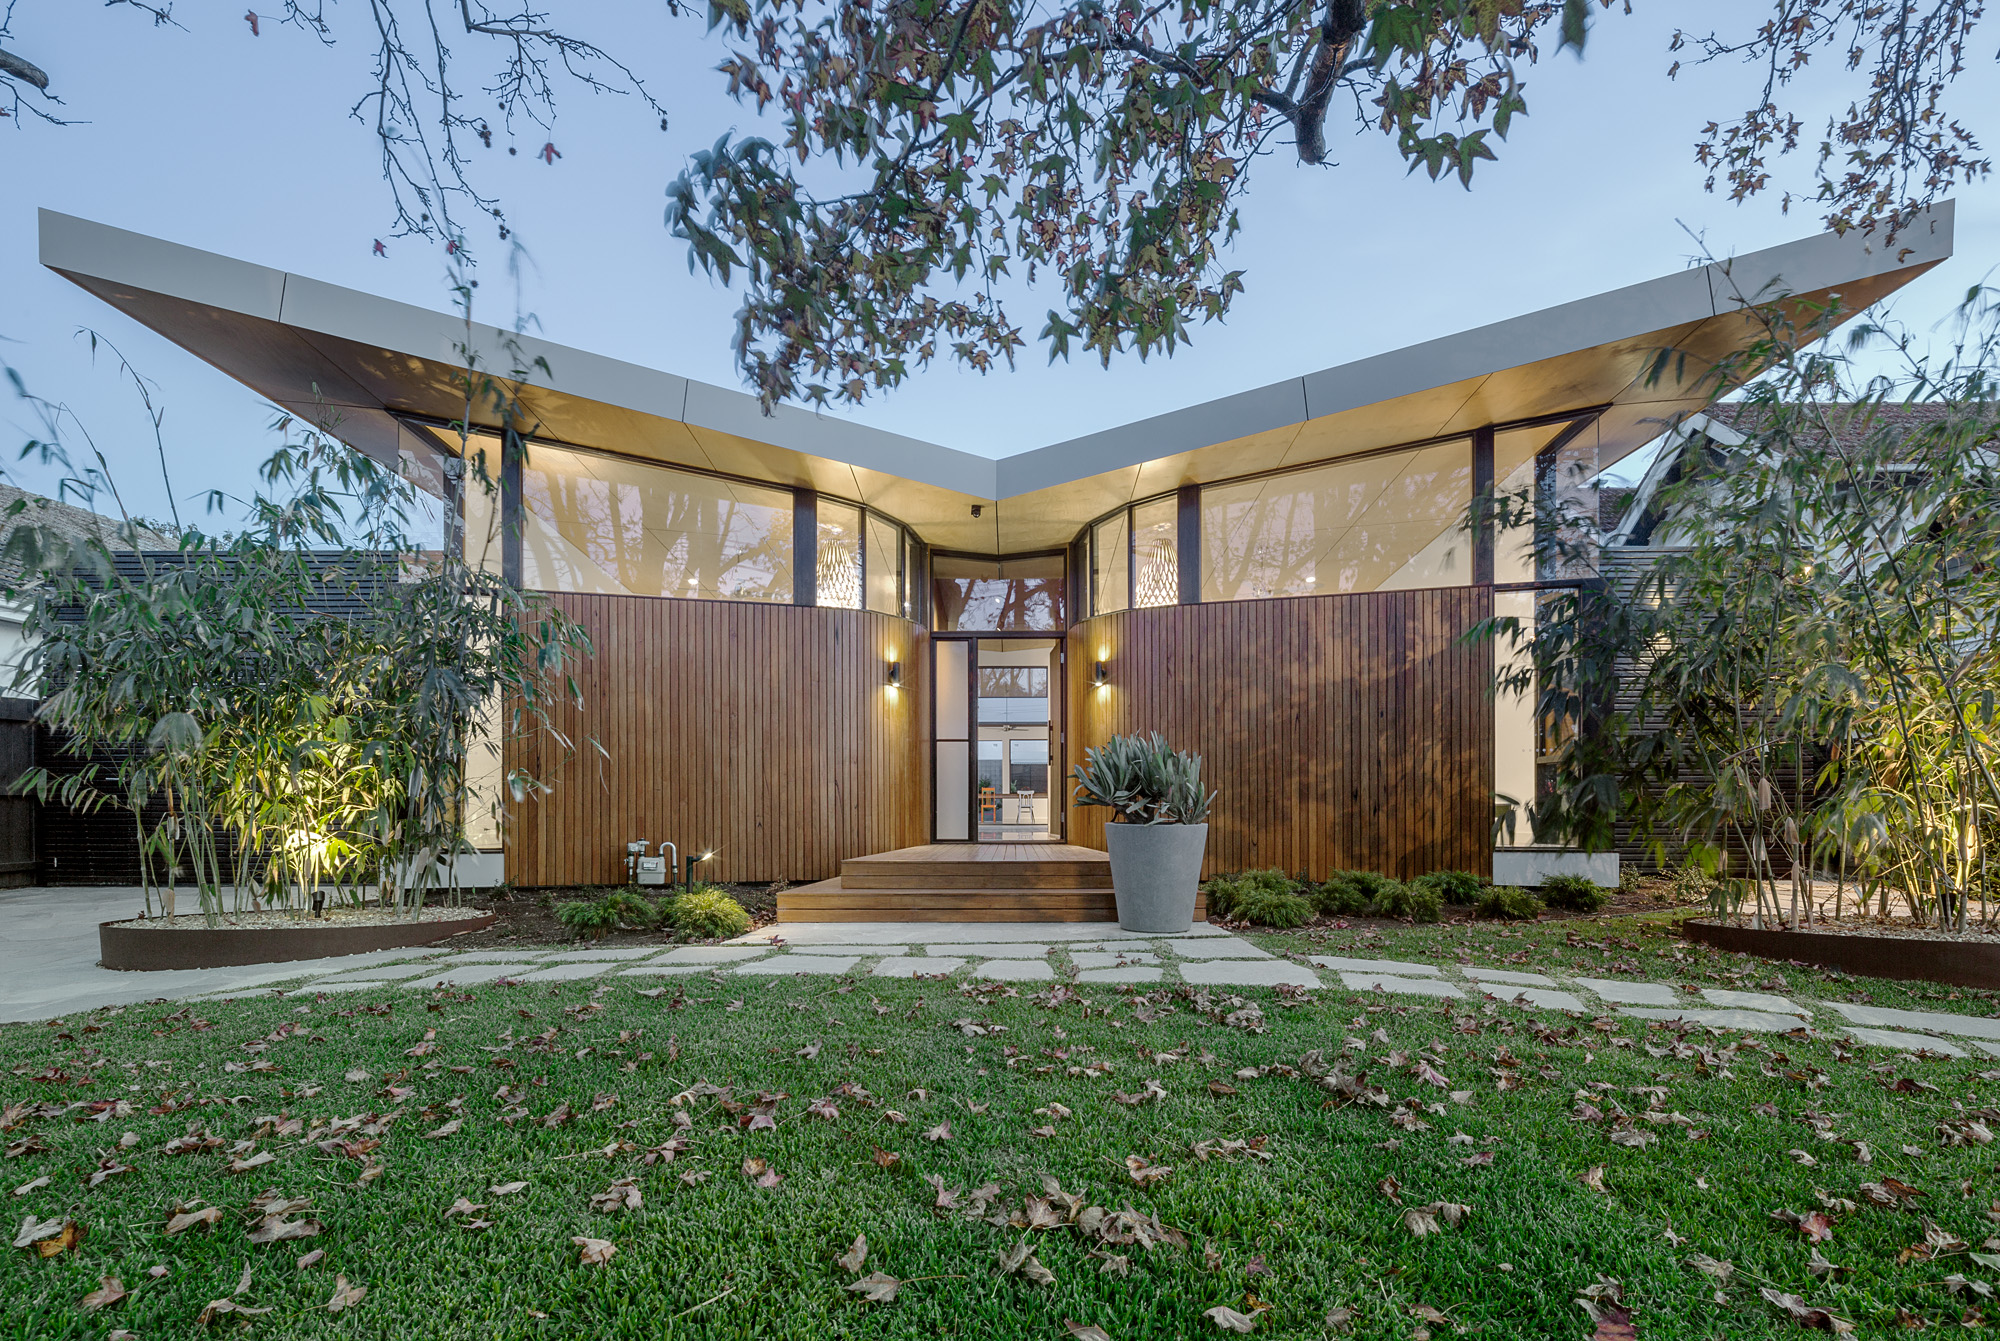 Residential — Zen Architects   Sustainable Architecture ... on angel house plans, star house plans, spirit house plans, feng shui house plans, japanese house plans, passion house plans, united states house plans, living off the grid house plans, love house plans, home house plans, haiku house plans, red house plans, the not so big house plans, spa house plans, art house plans, harmony house plans, nature house plans, design house plans, light house plans, tibet house plans,